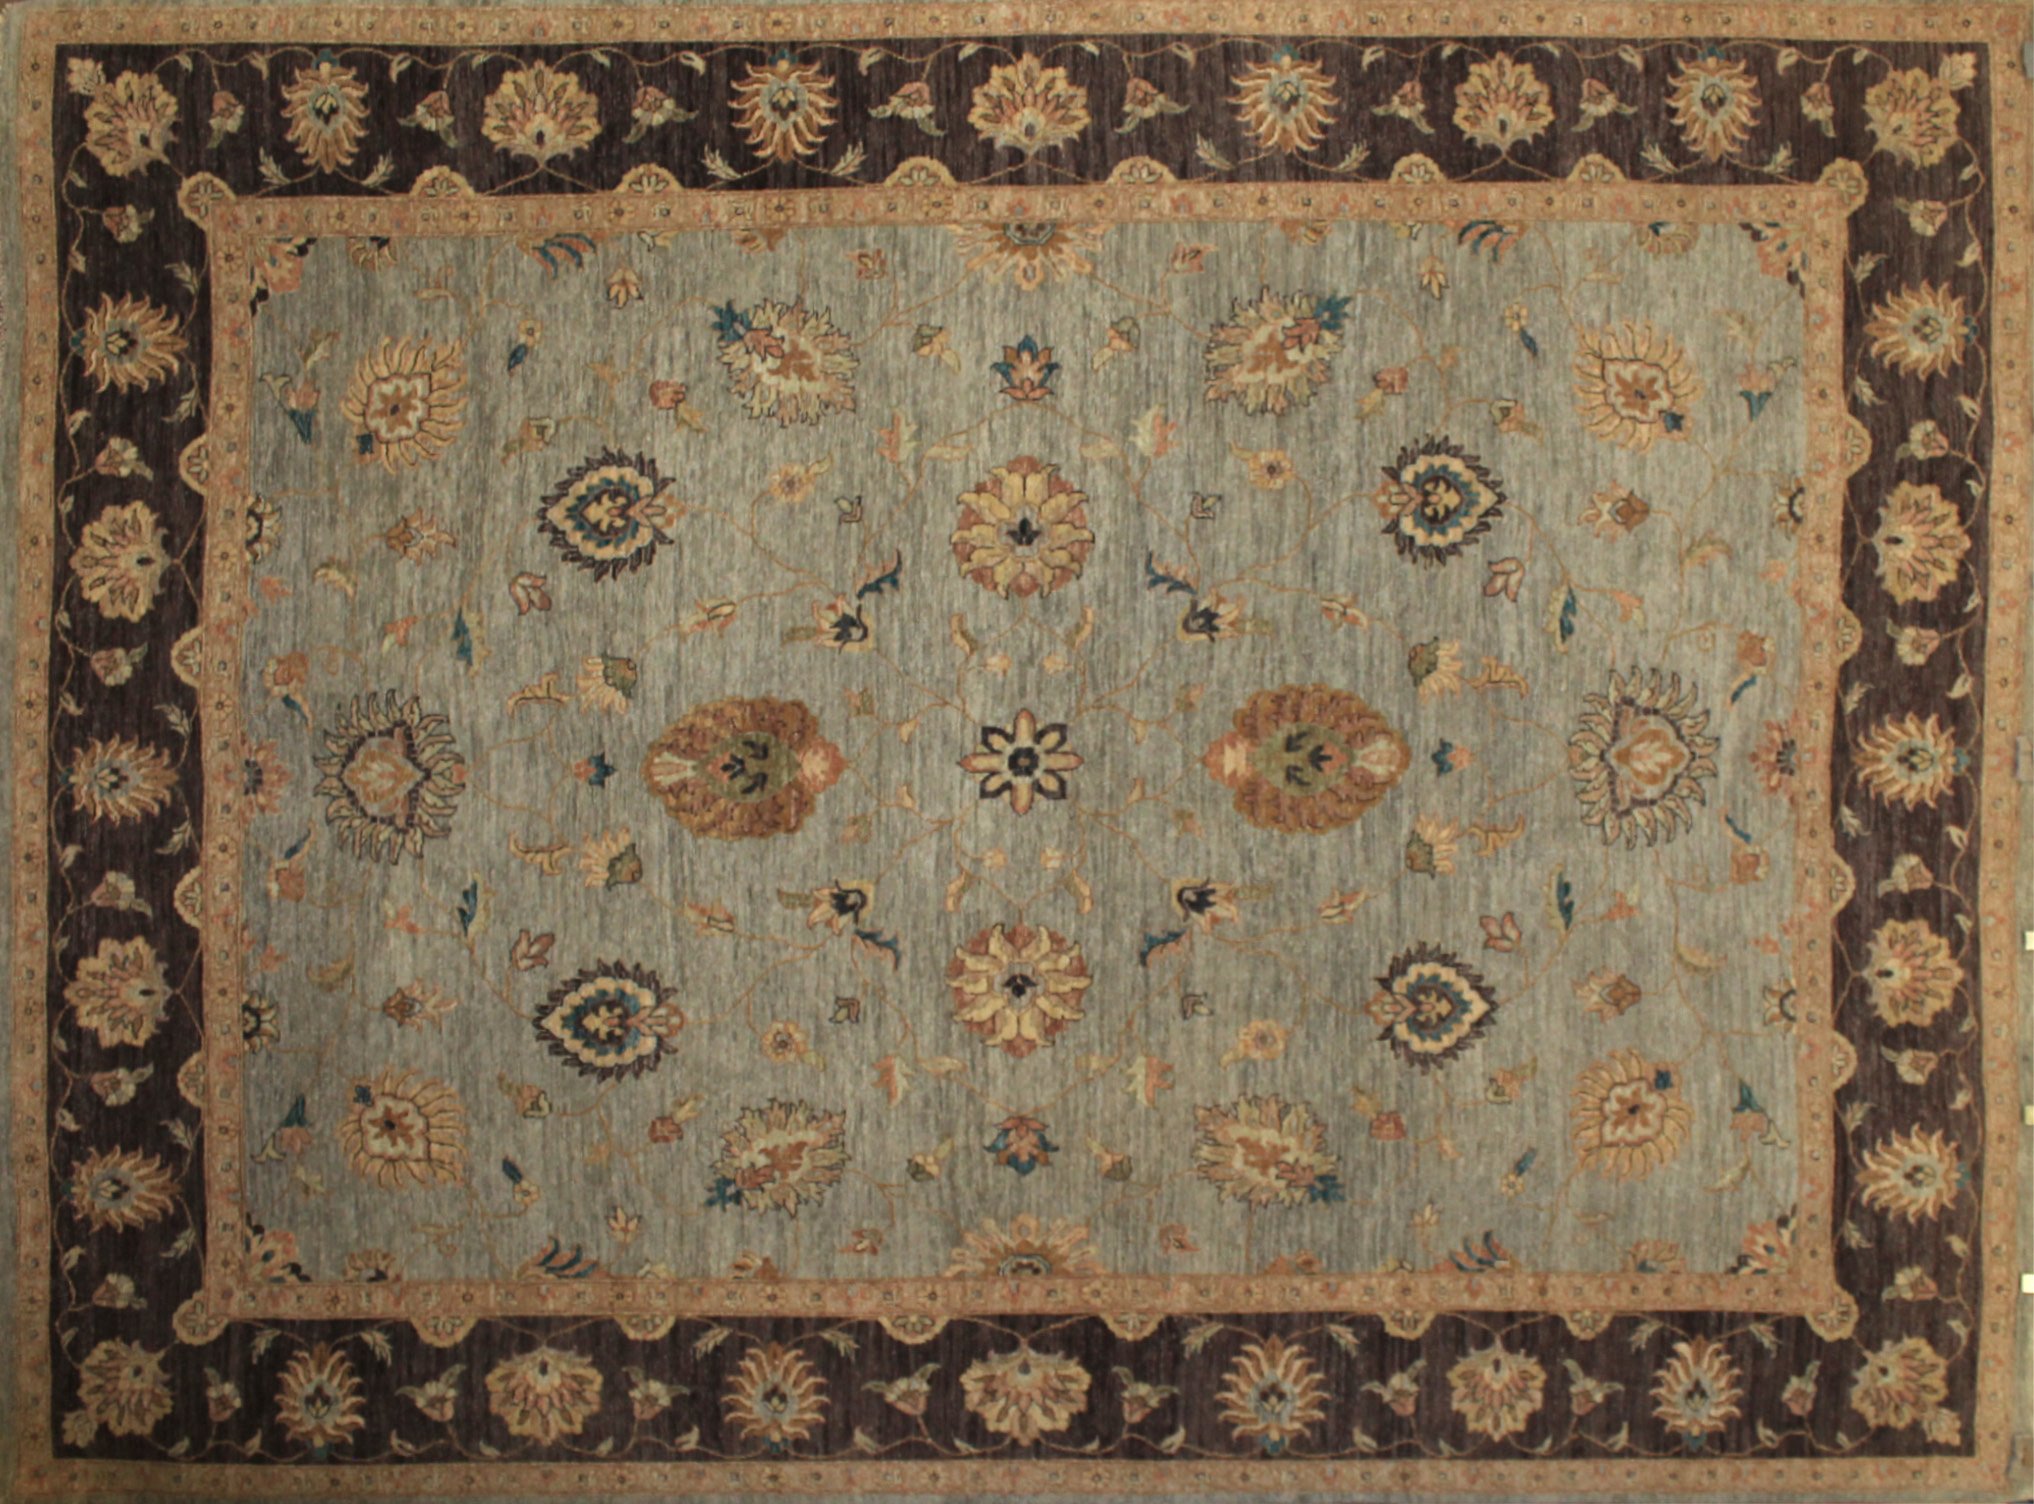 9x12 Traditional Hand Knotted Wool Area Rug - MR5263